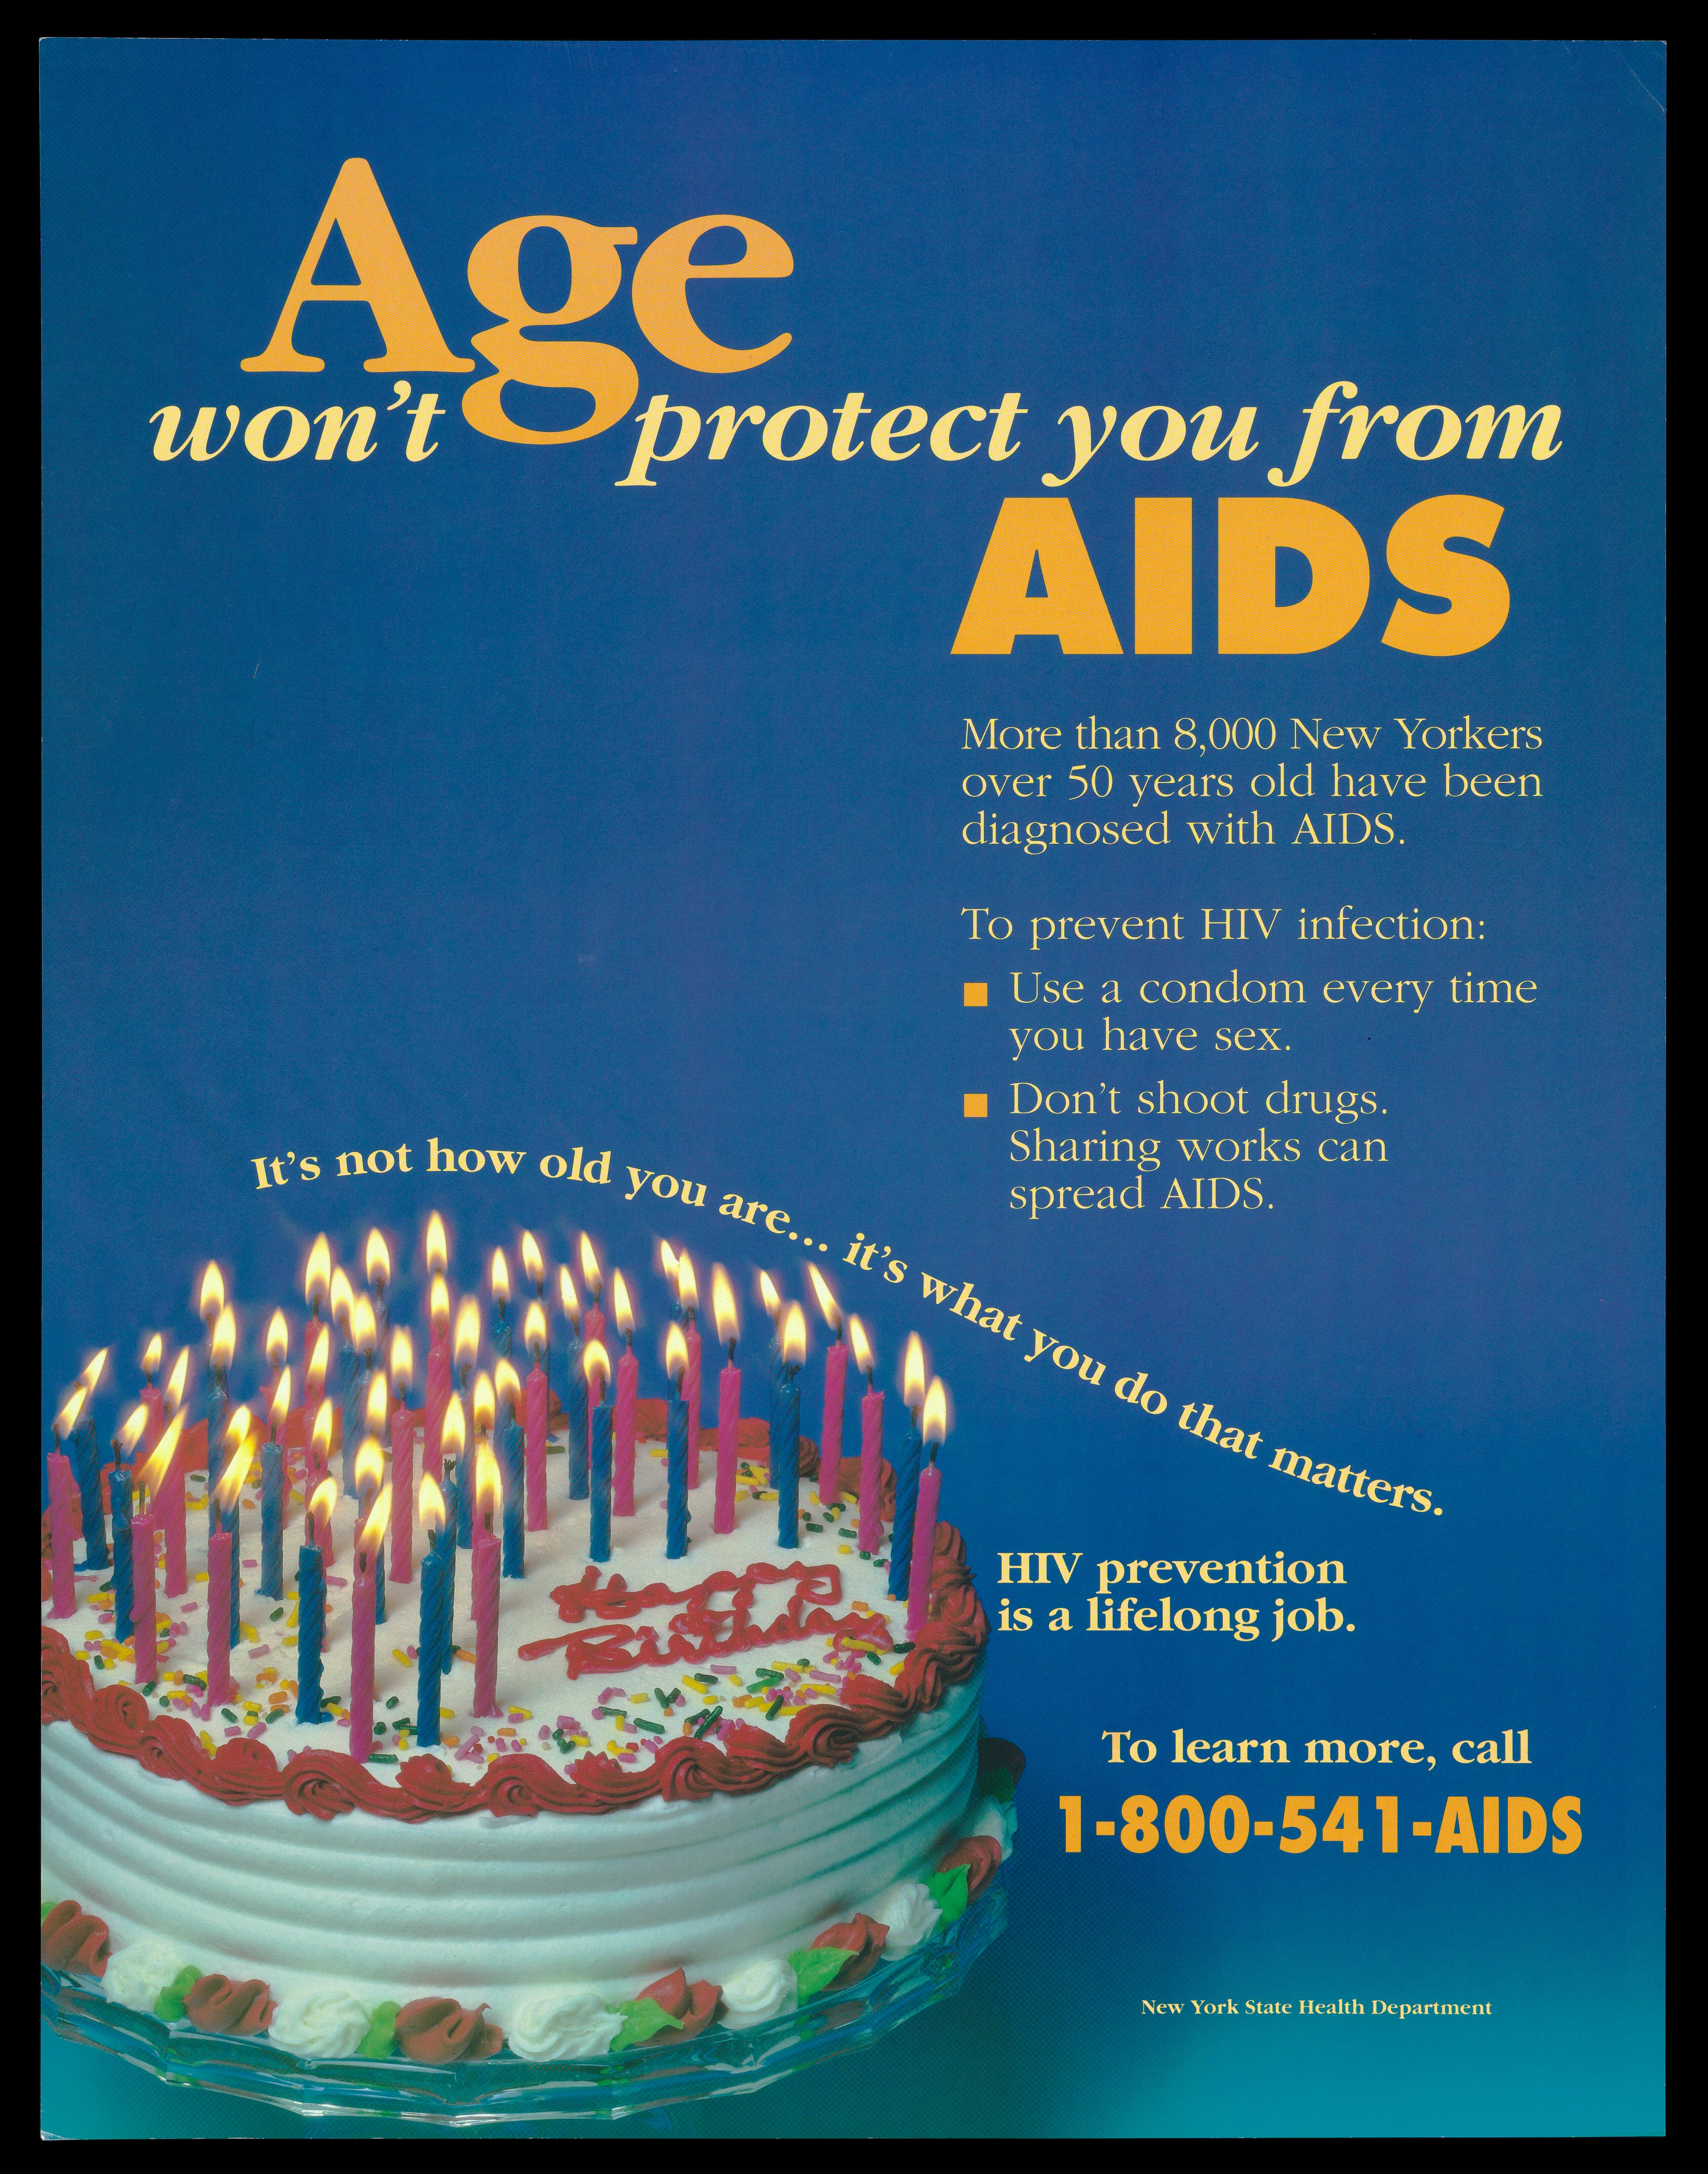 A Birthday Cake With Lit Candles And Message That Age Wont Provide Protection From AIDS Advertisement For The Helpline By New York State Health